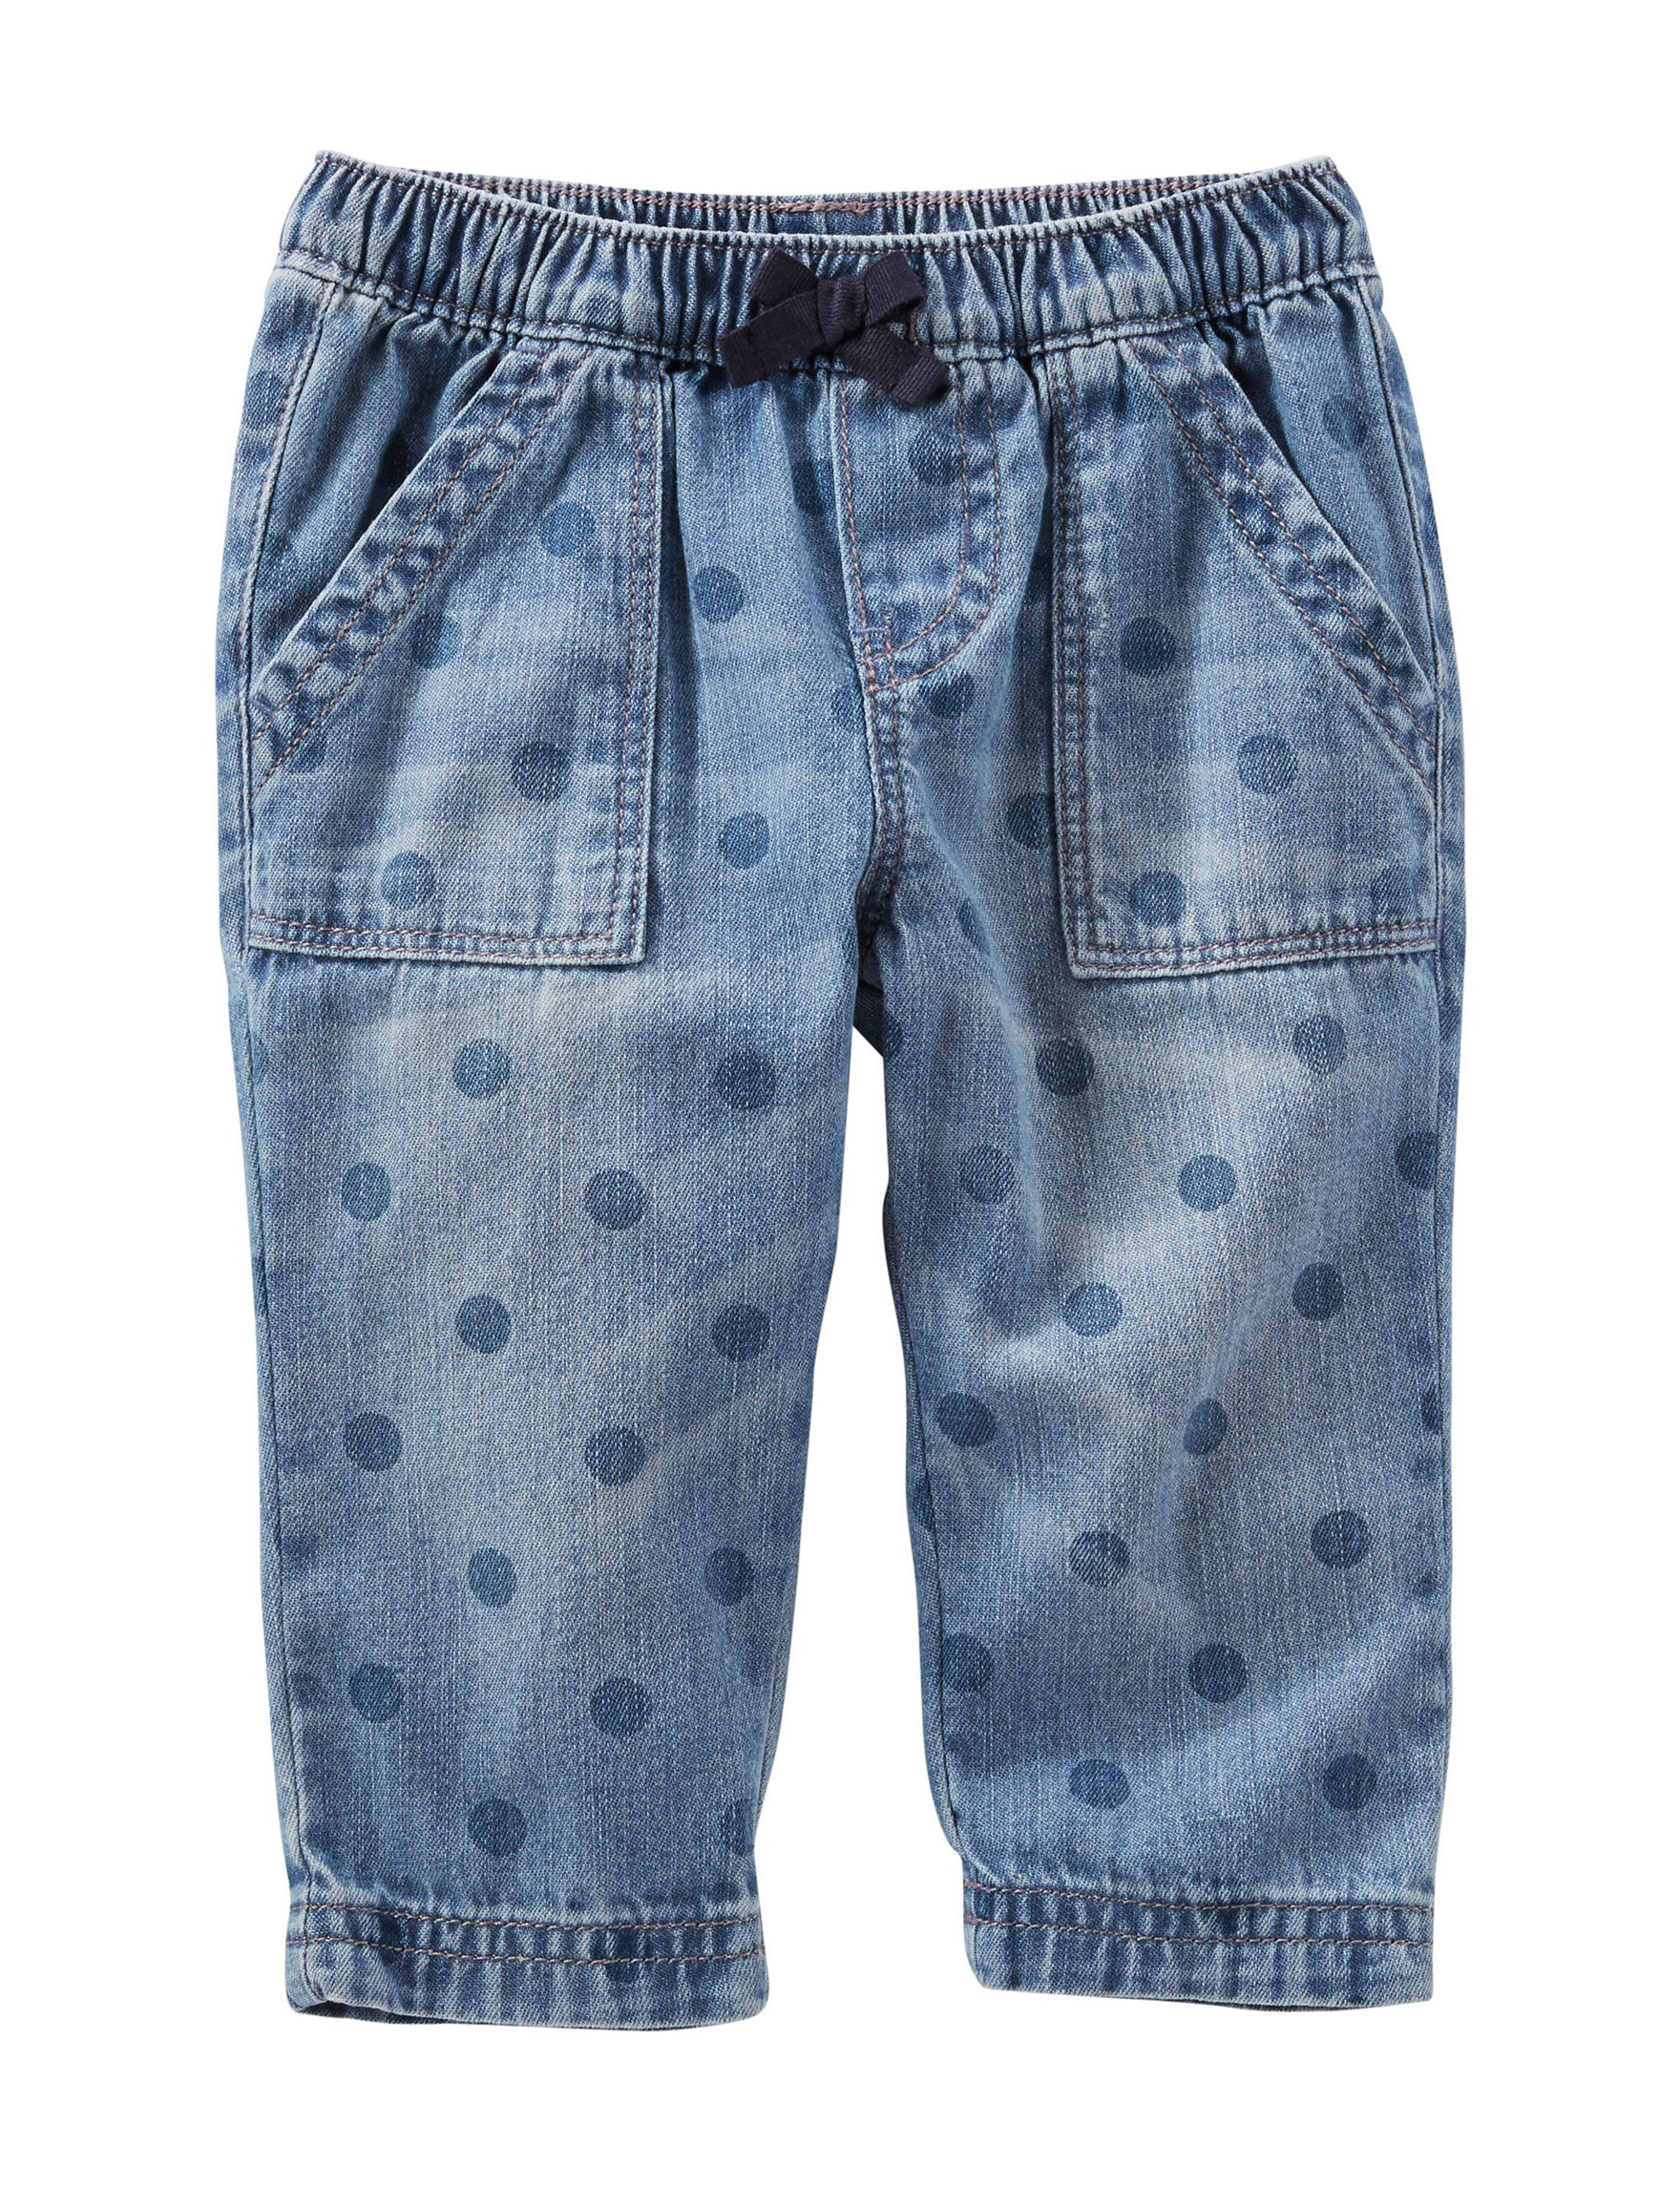 Oshkosh B'Gosh Chambray